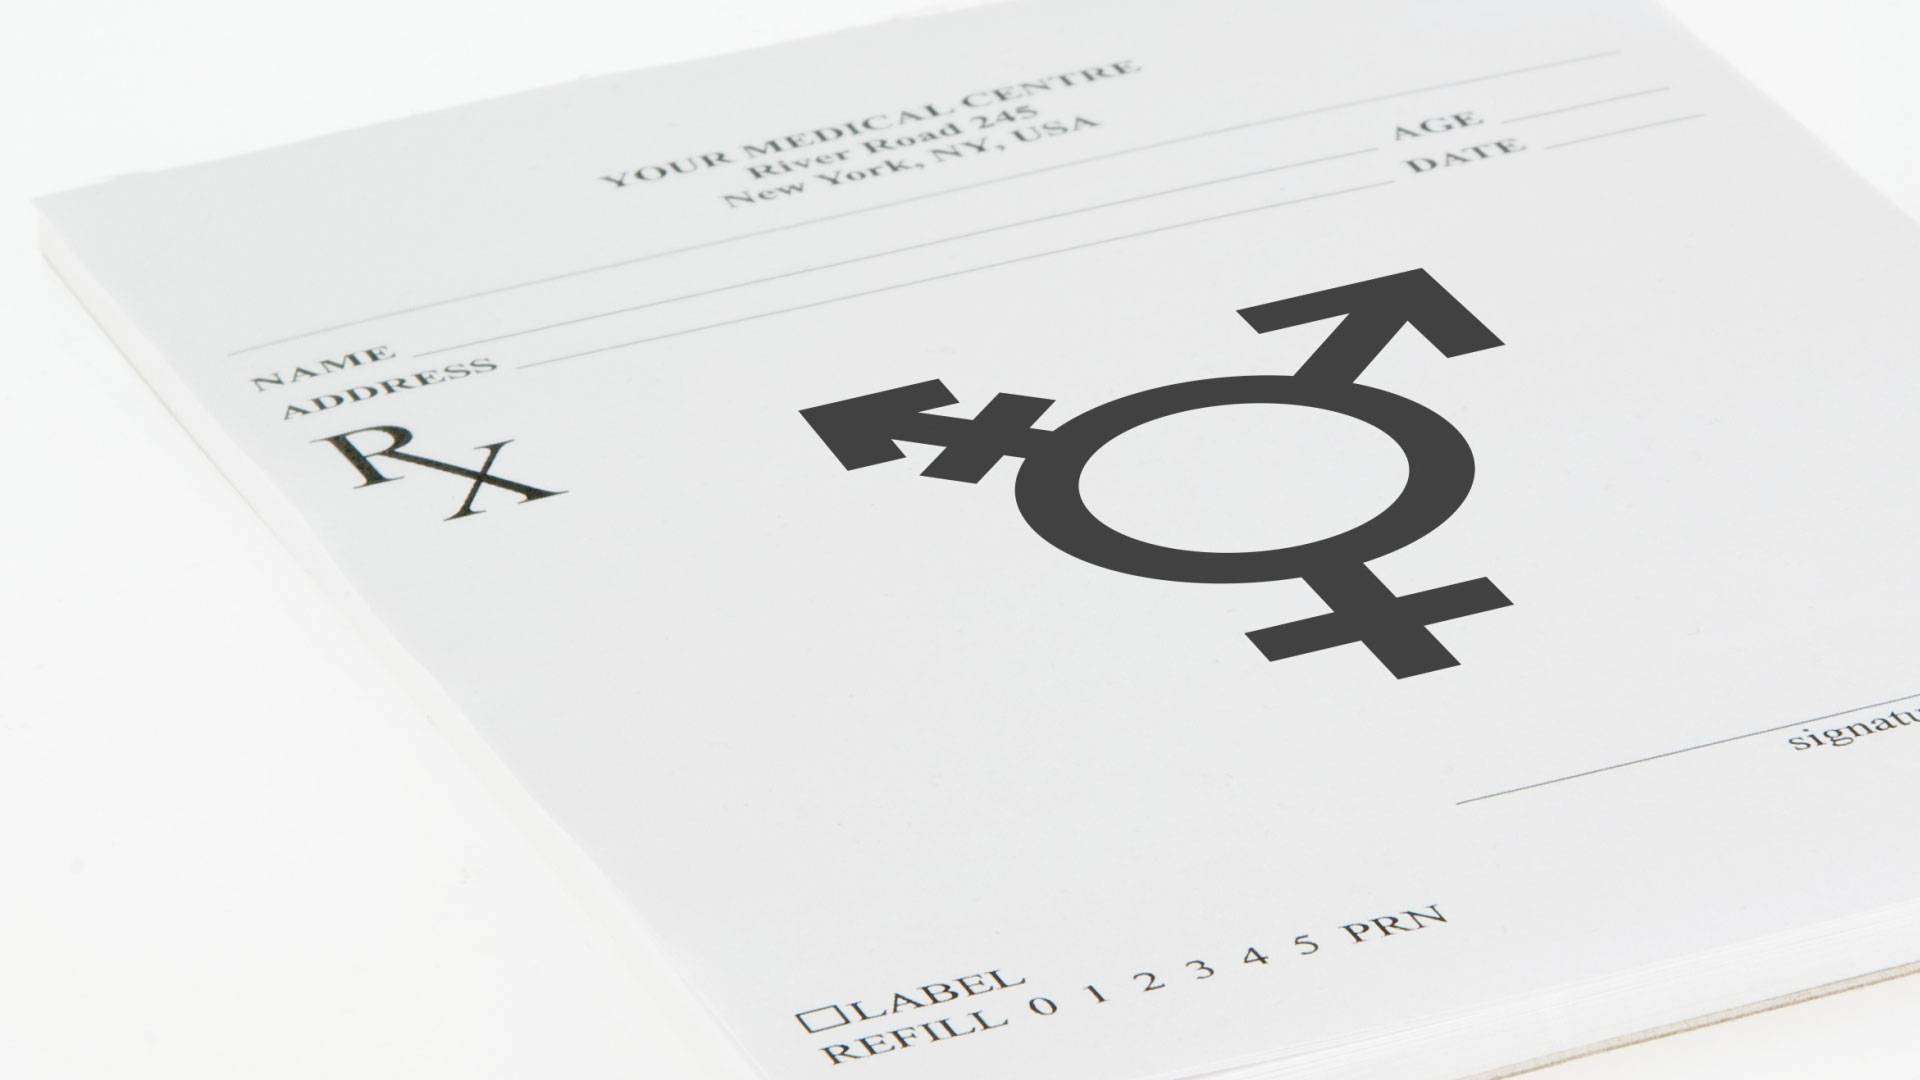 Here We Go: Boston Doctors Seek Approval to Transplant Dead Man's Sex Organs Onto Woman Who Identifies as Transgender